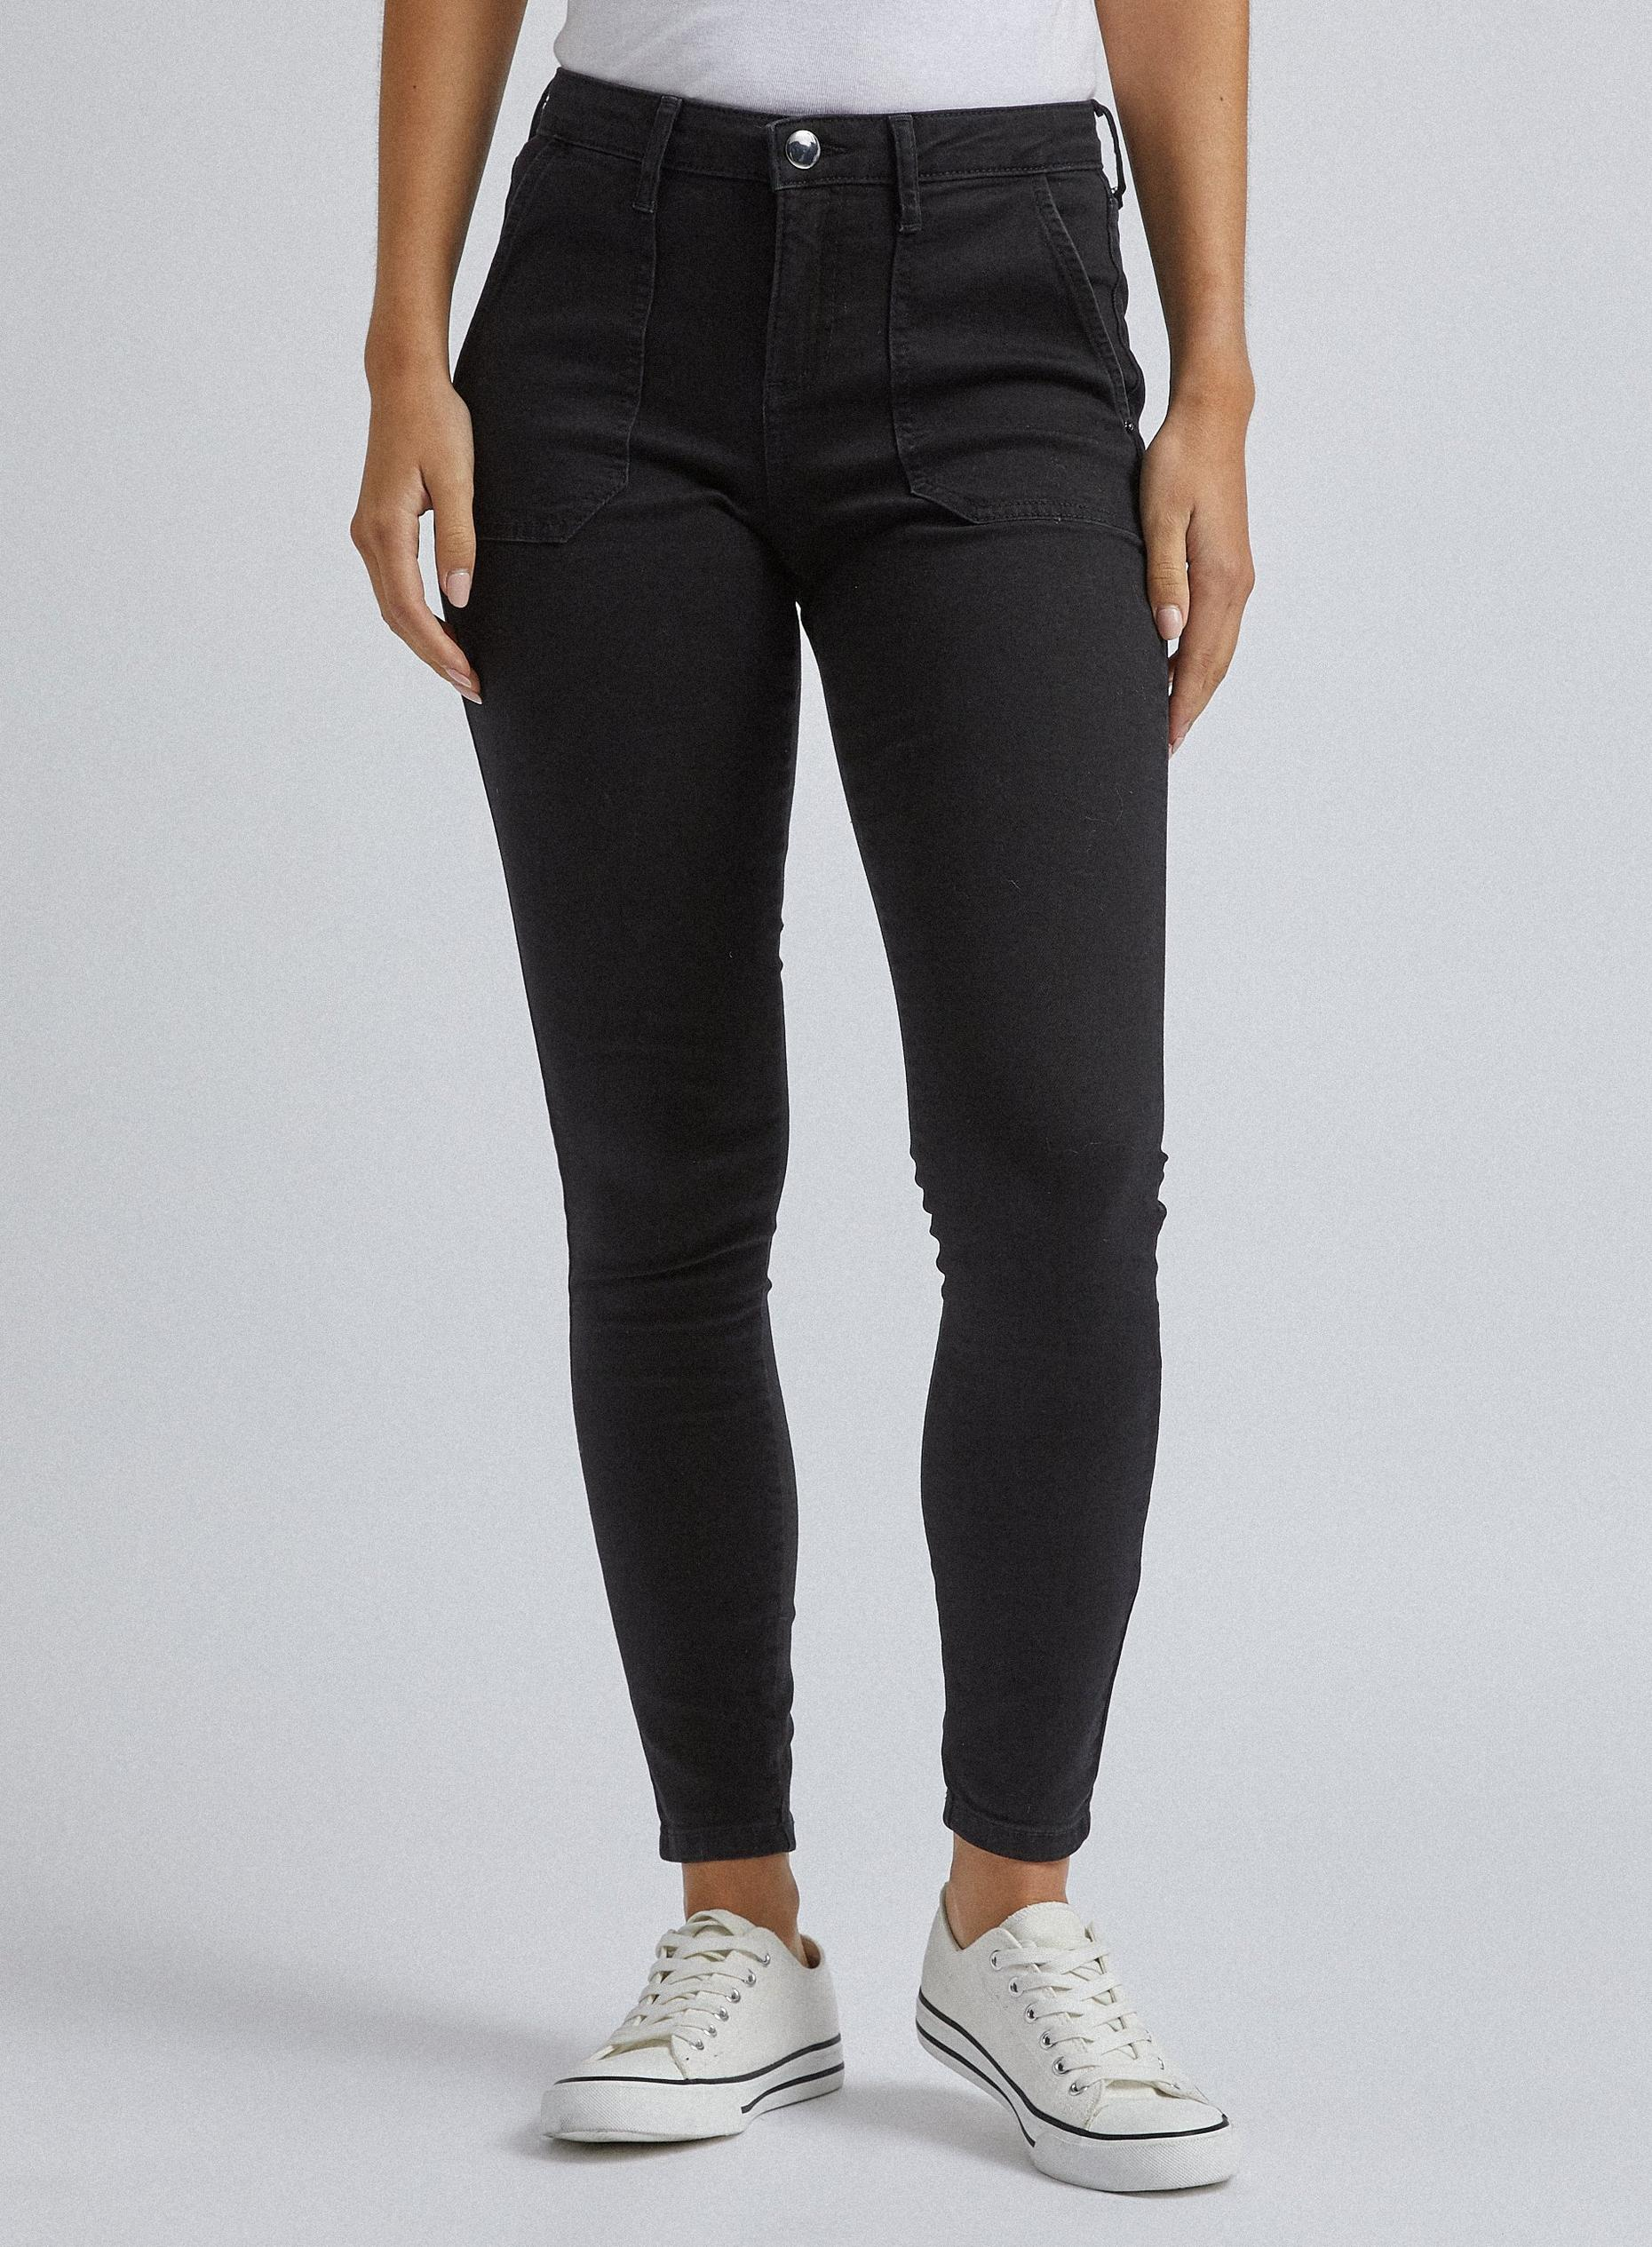 Black Denim Utility Darcy Jeans